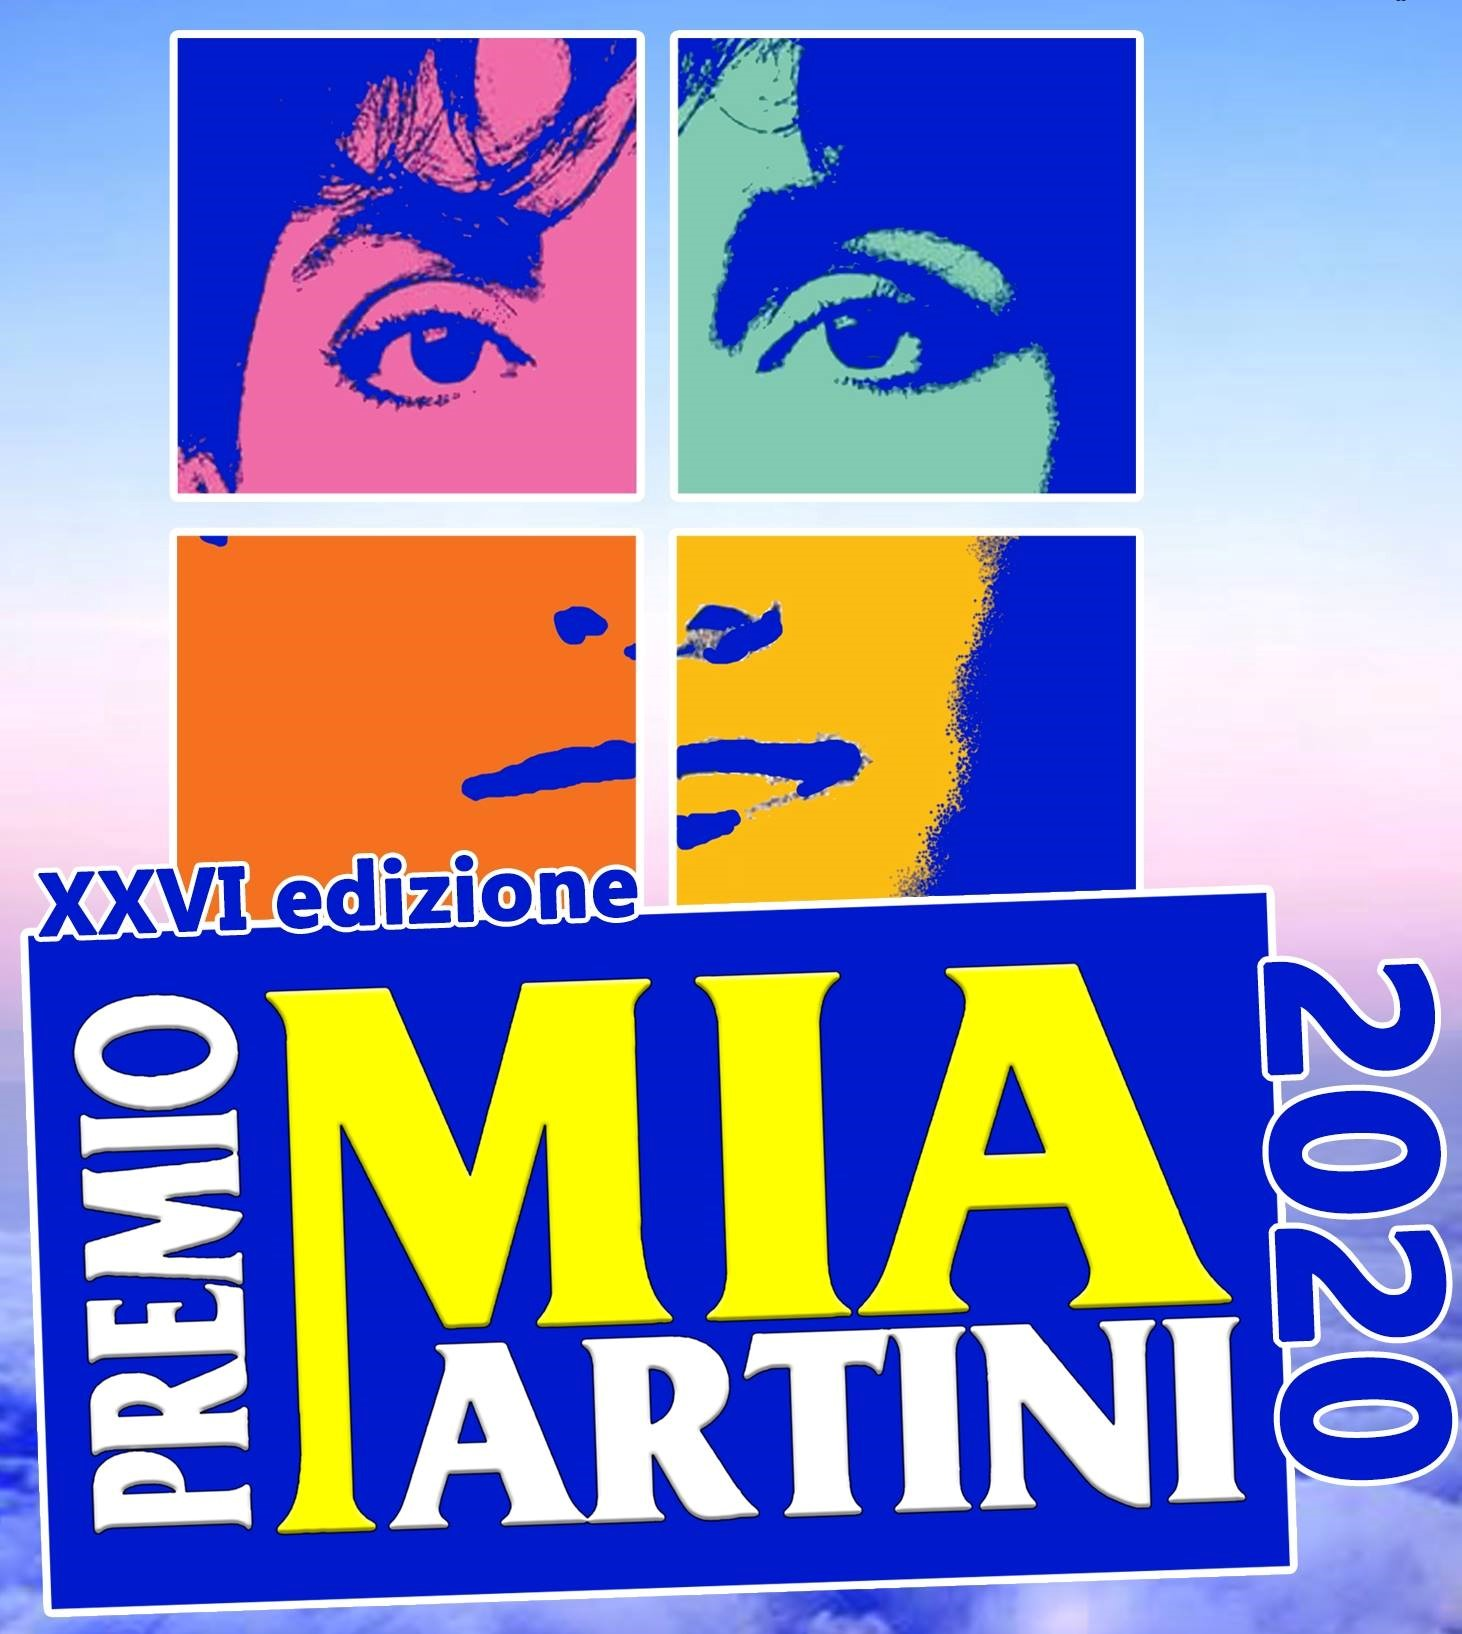 Thumbnail image for /public/upload/2020/2/637172078750228486_Premio Mia Martini 2020.jpg